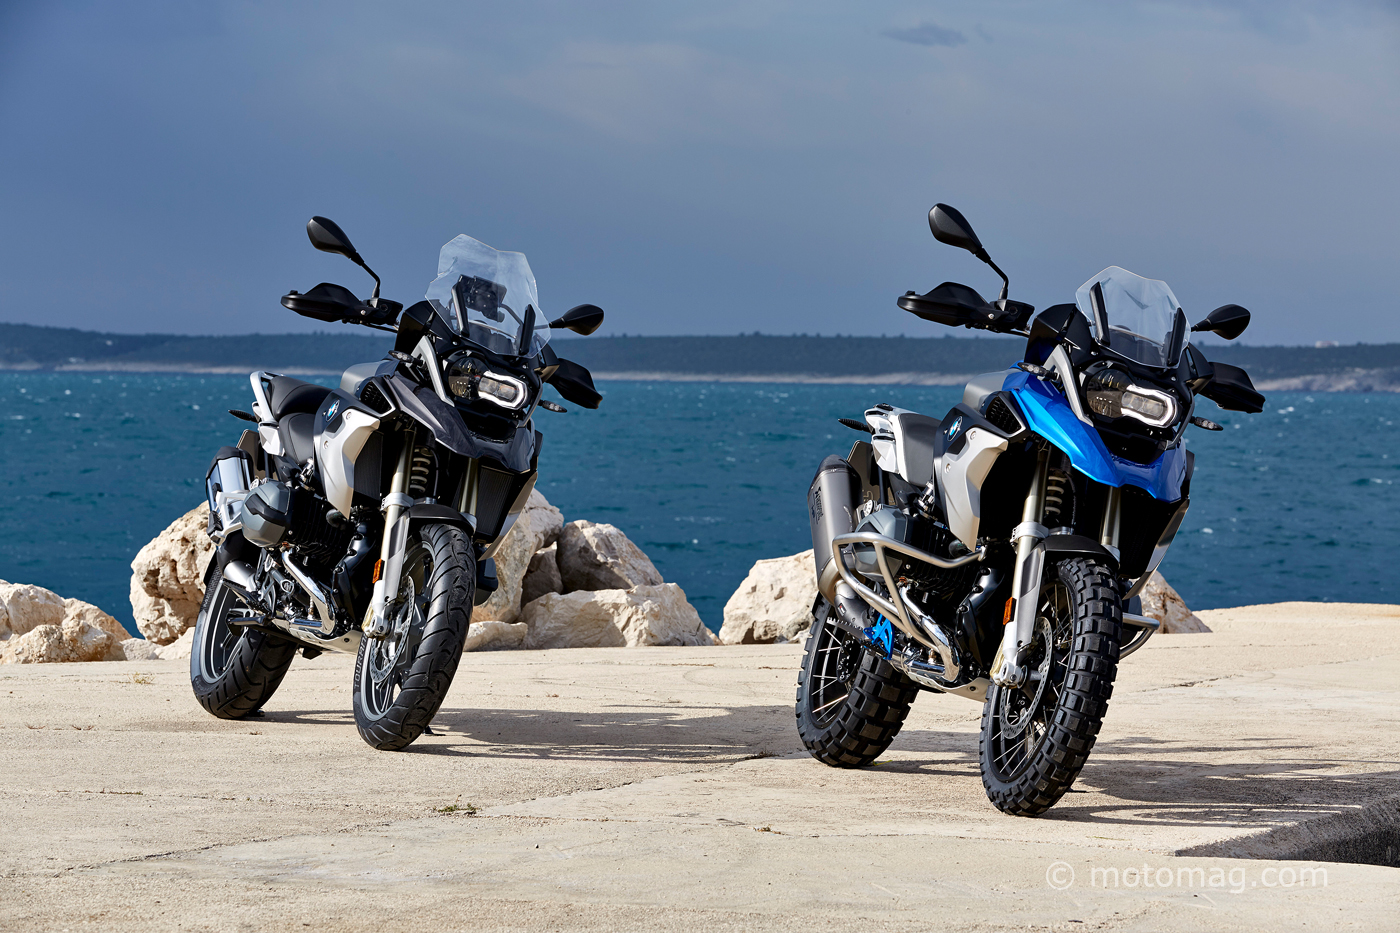 bmw r1200gs 2017 trois versions pour un choix assum moto magazine leader de l actualit. Black Bedroom Furniture Sets. Home Design Ideas